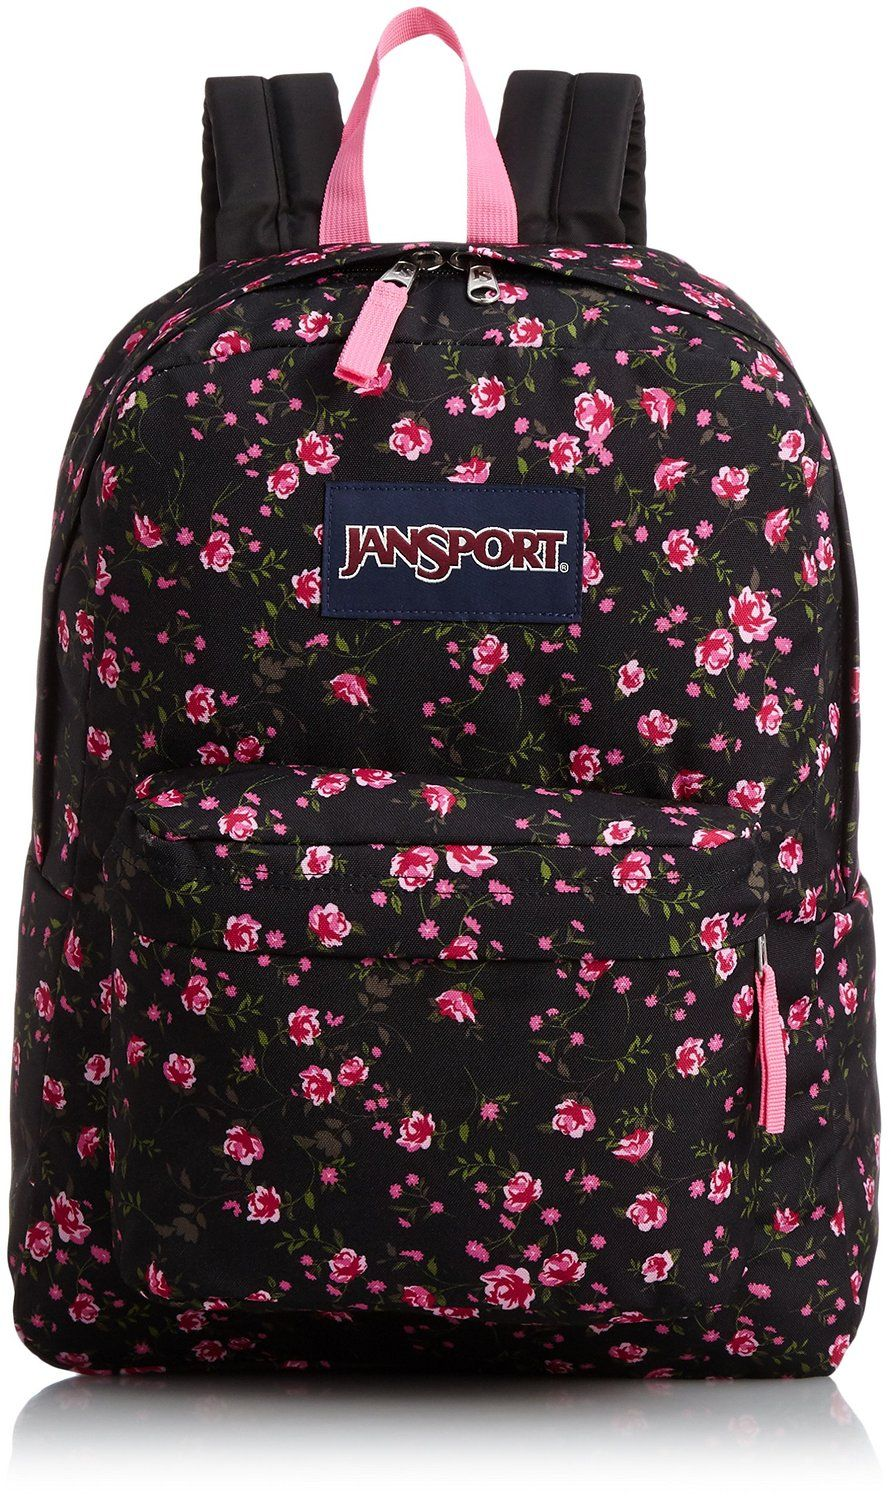 2628a2ee5f62 Amazon.com  JanSport Women s Superbreak Backpack